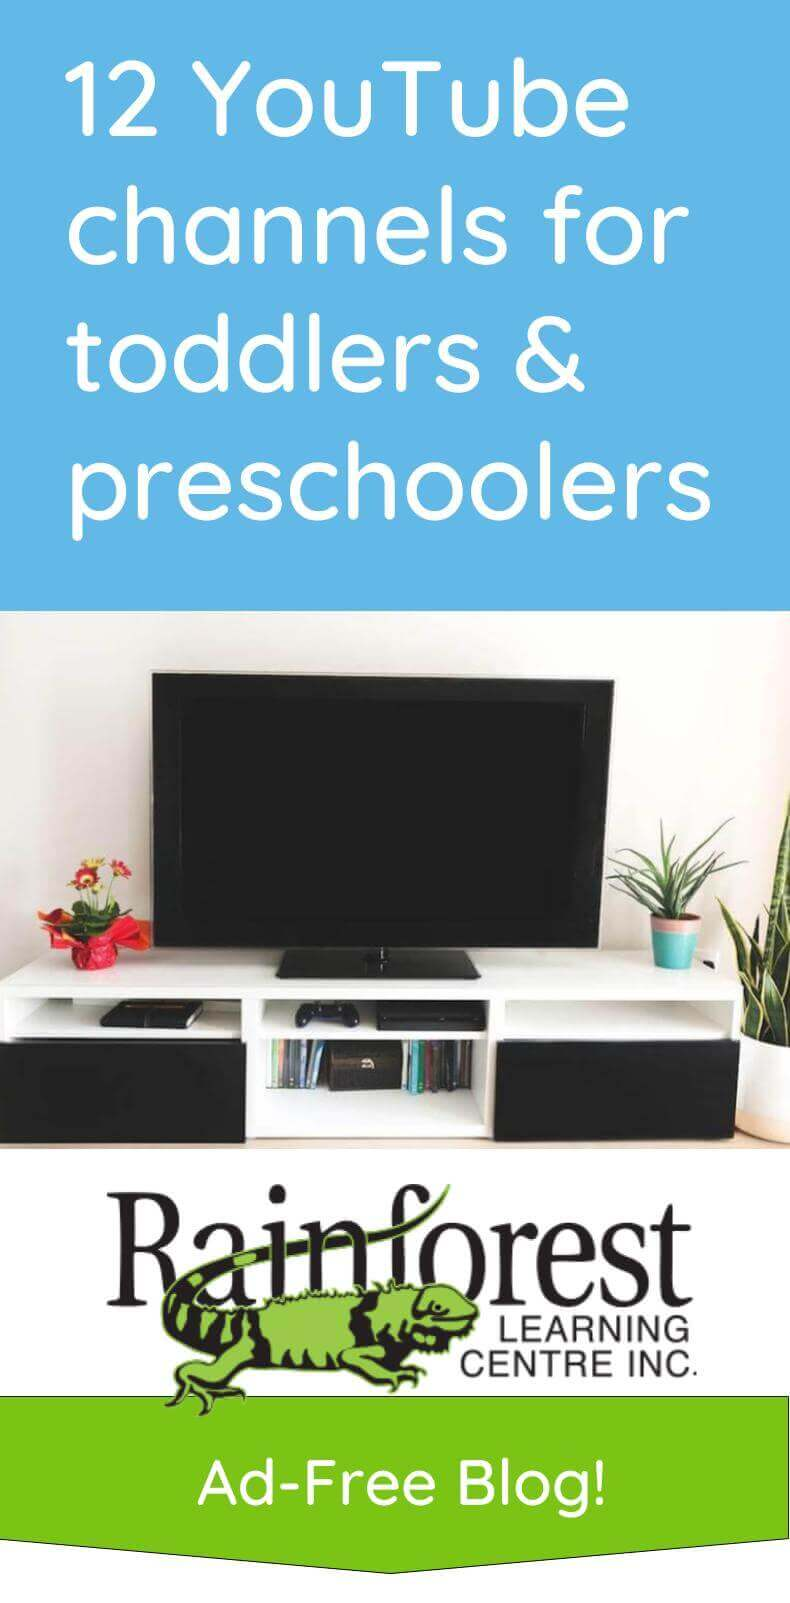 12 YouTube channels for toddlers and preschoolers article - pinterest image